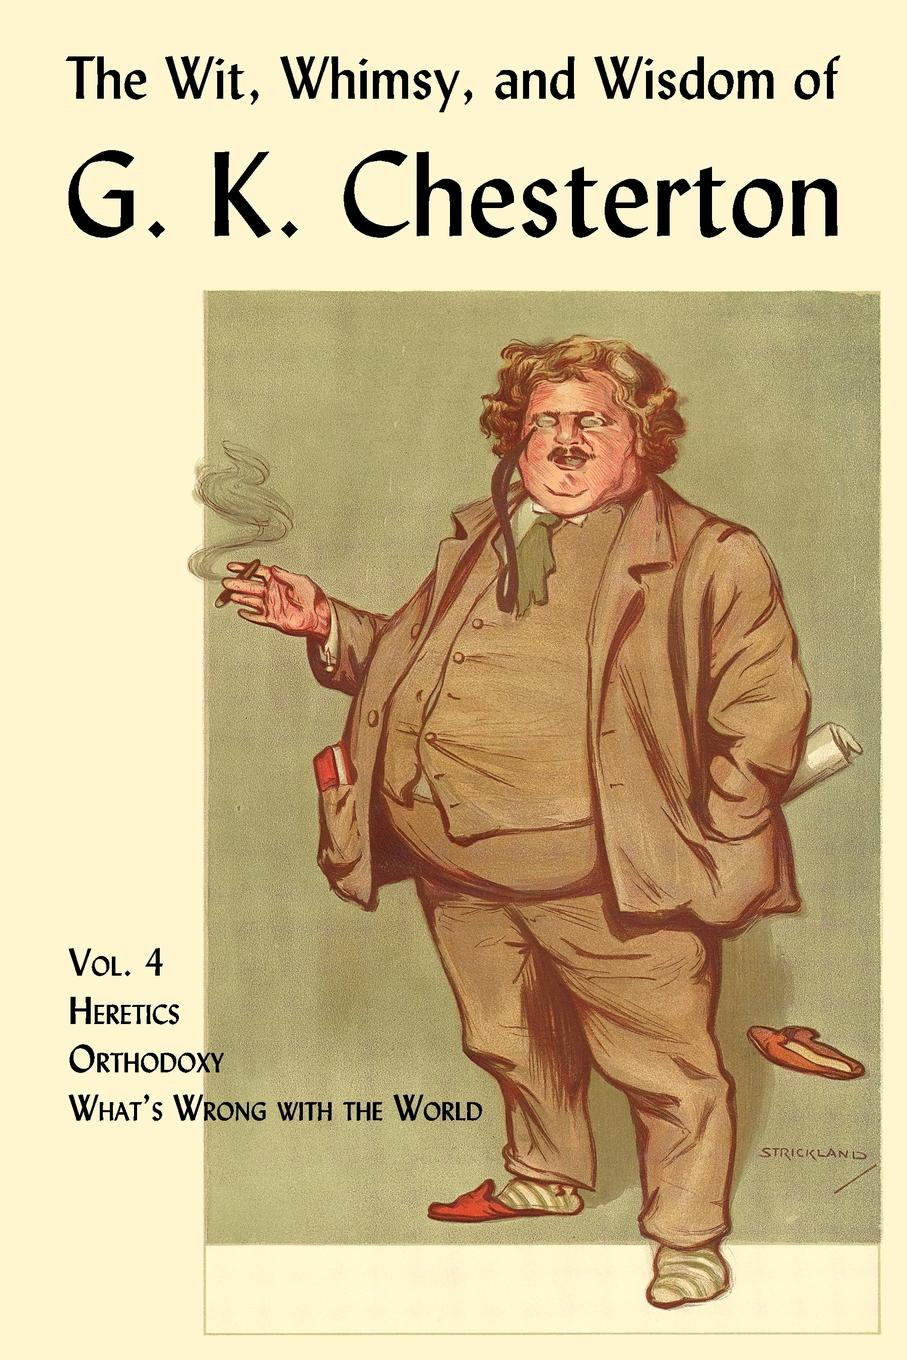 G. K. Chesterton The Wit, Whimsy, and Wisdom of G. K. Chesterton, Volume 4. Heretics, Orthodoxy, What.s Wrong with the World